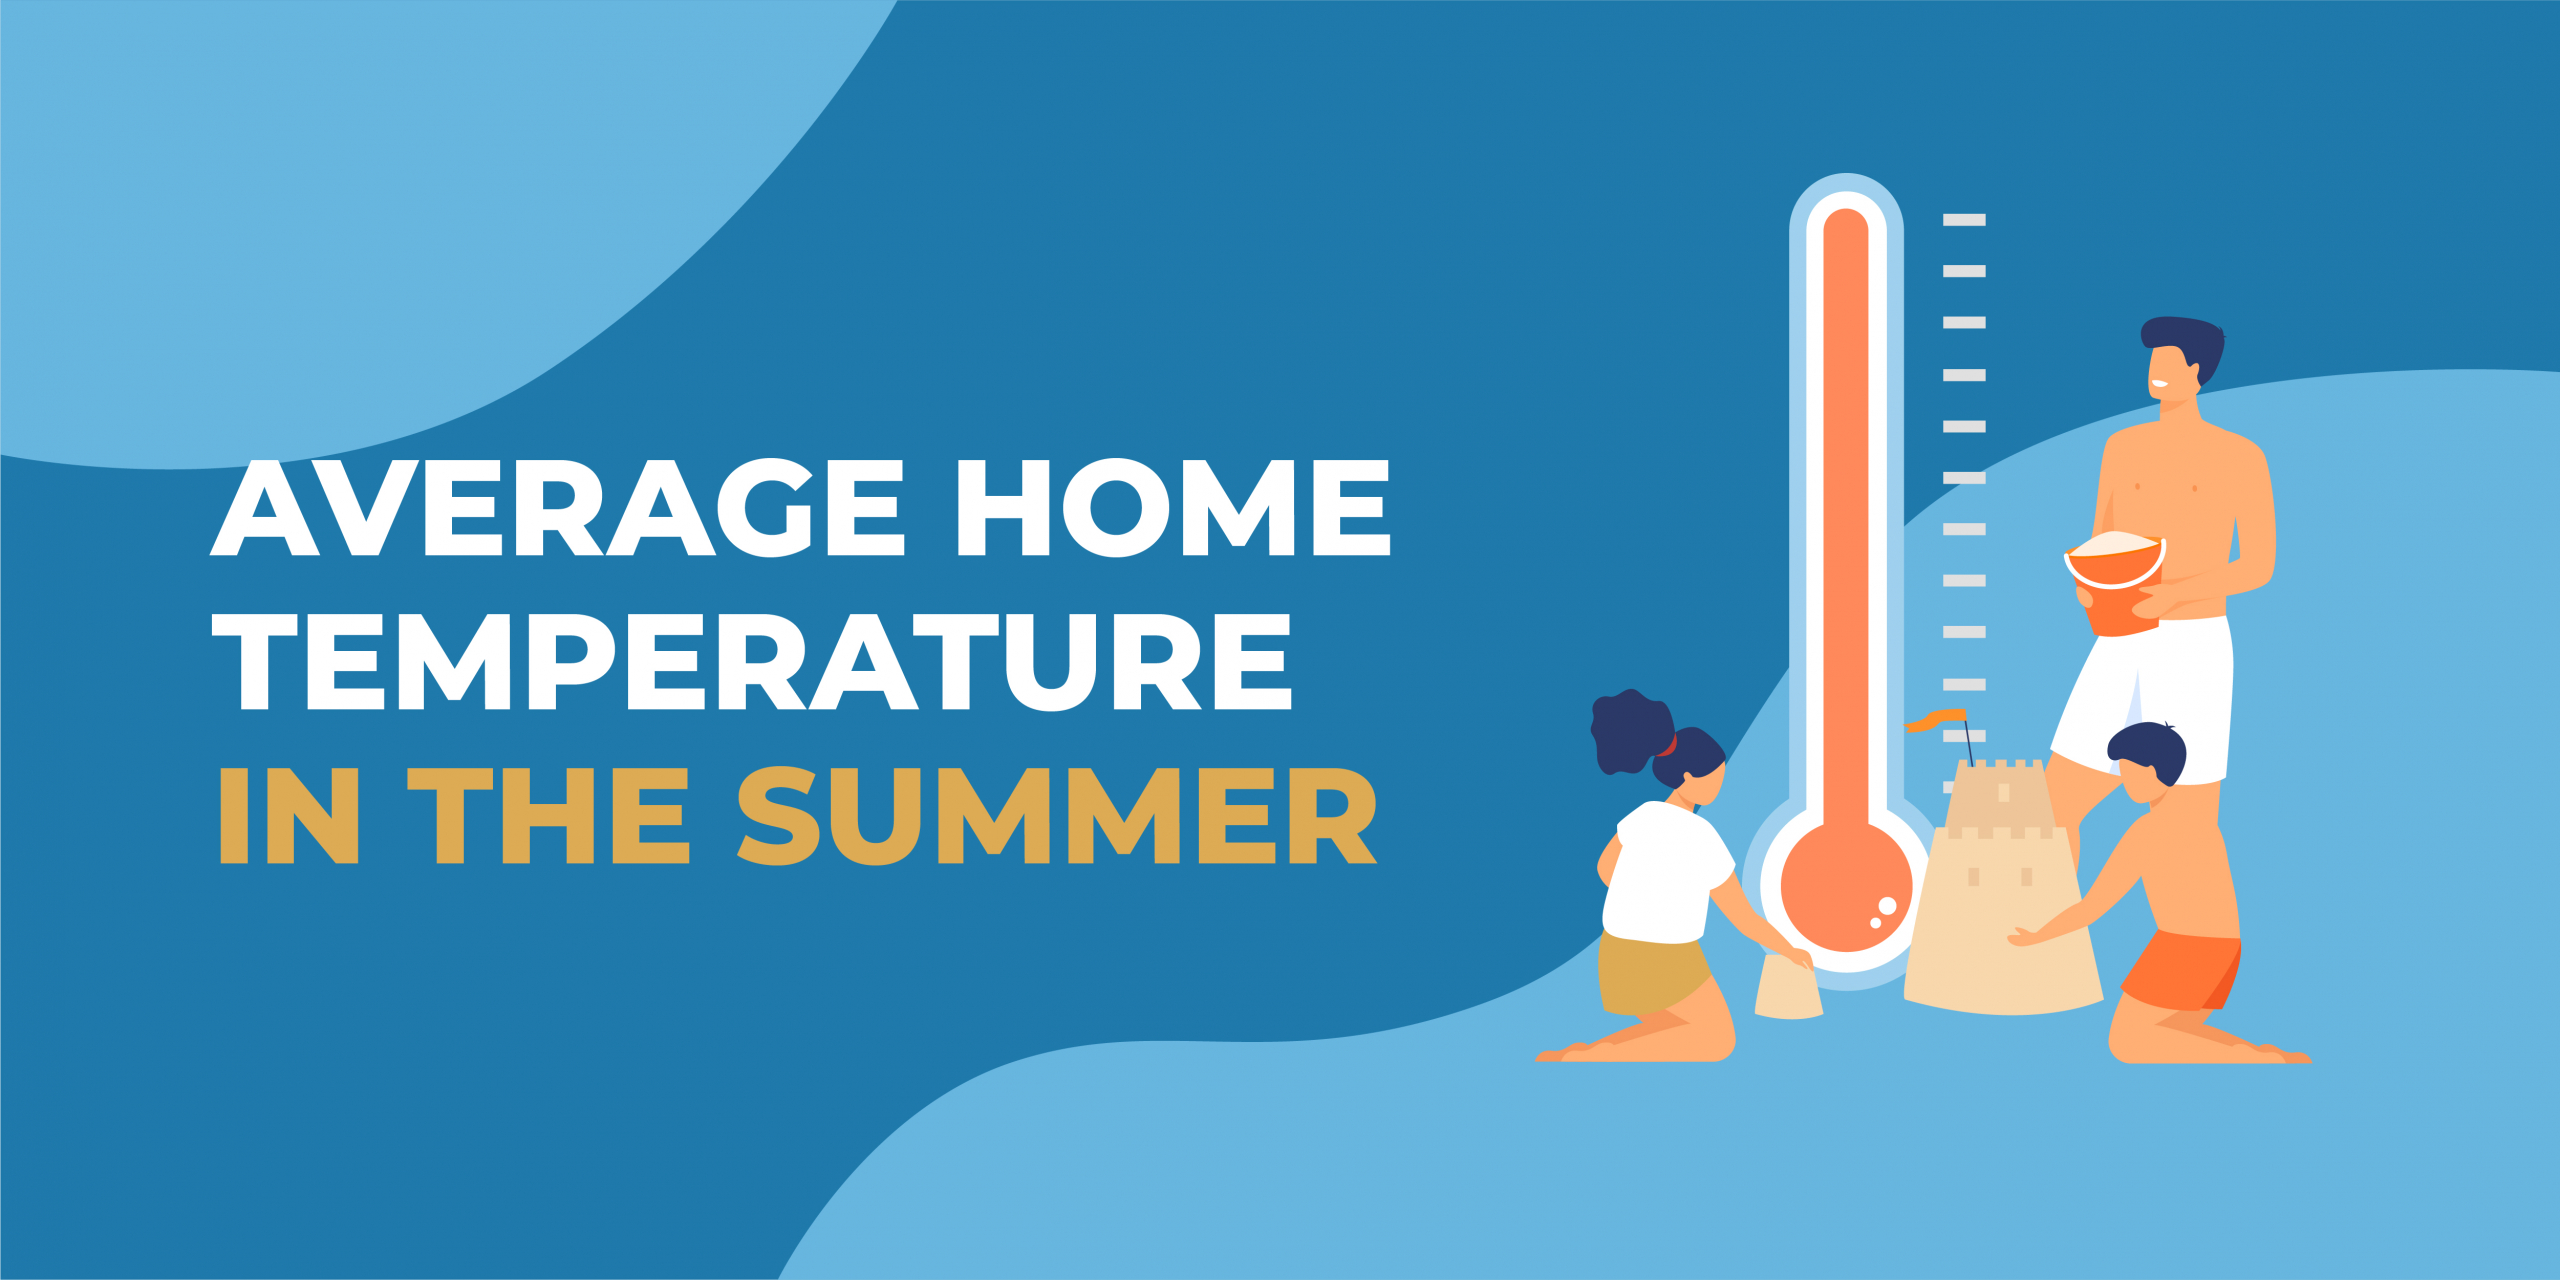 Average Home Temperature in Summer